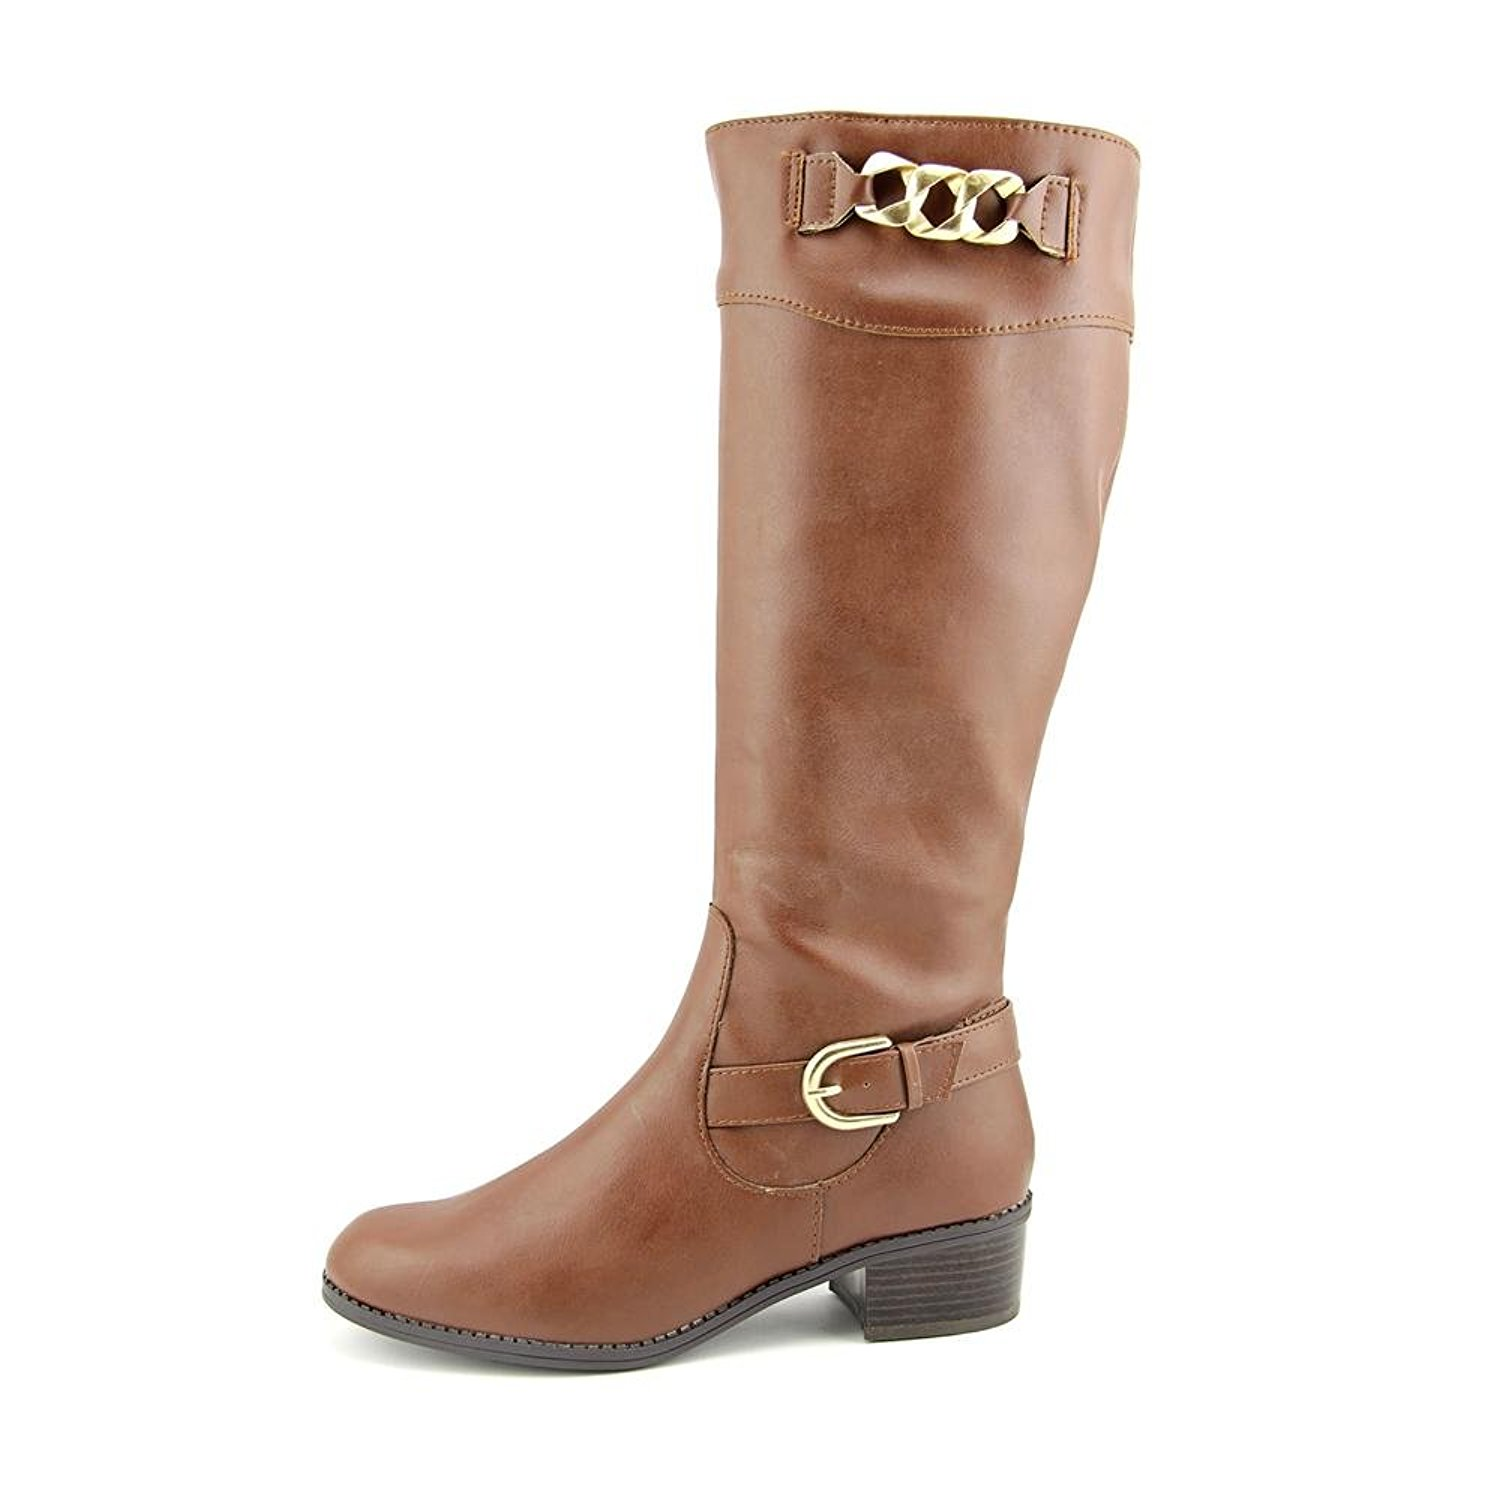 Womens Donnely Closed Toe Mid-Calf Fashion Boots